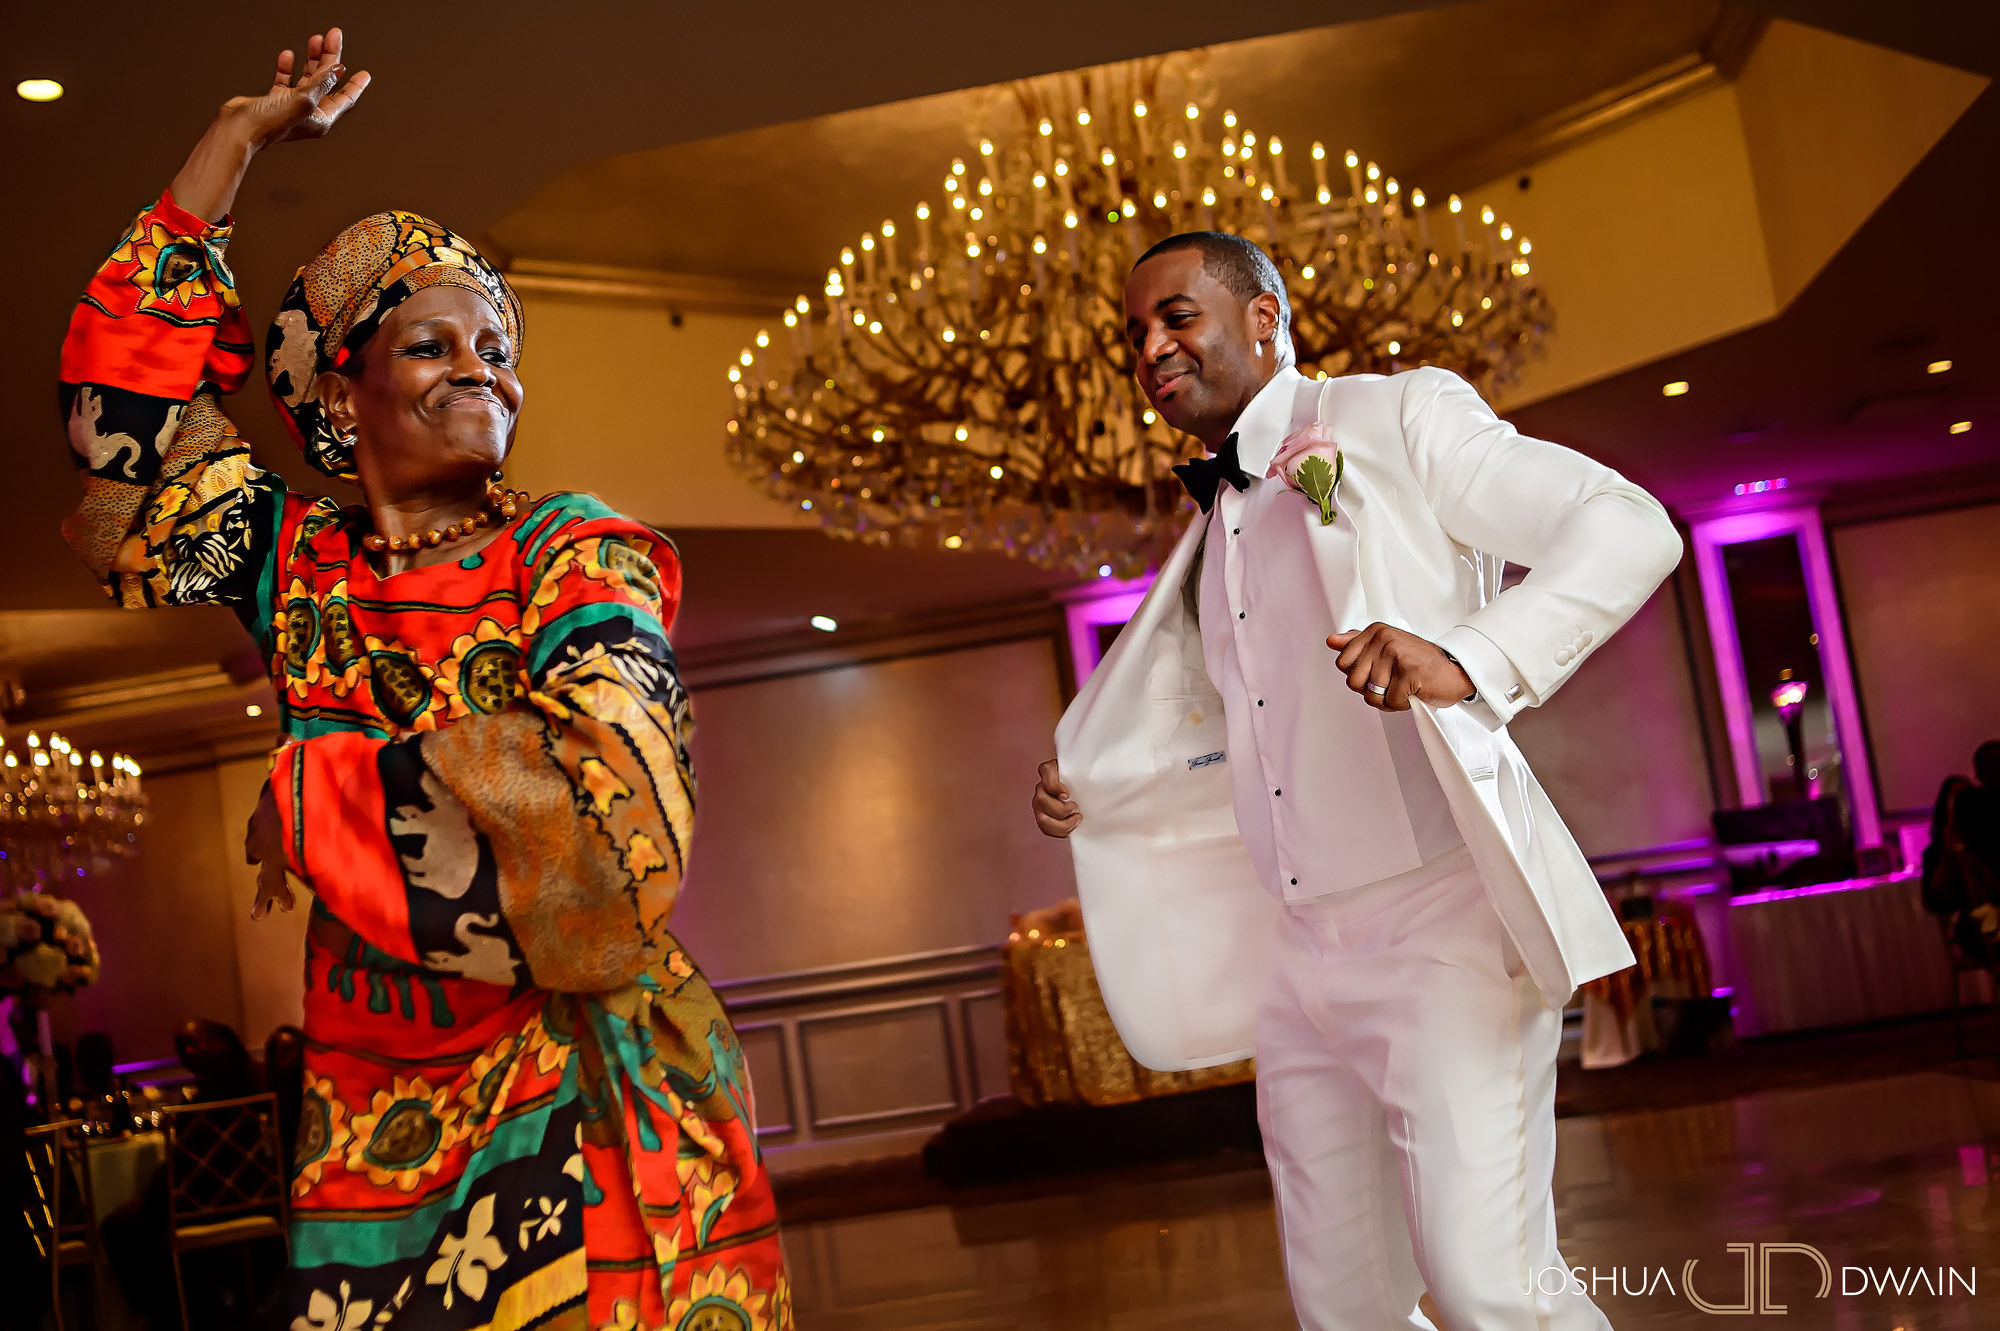 sandra-otwan-038-surf-club-new-rochelle-wedding-joshua-dwain-photos